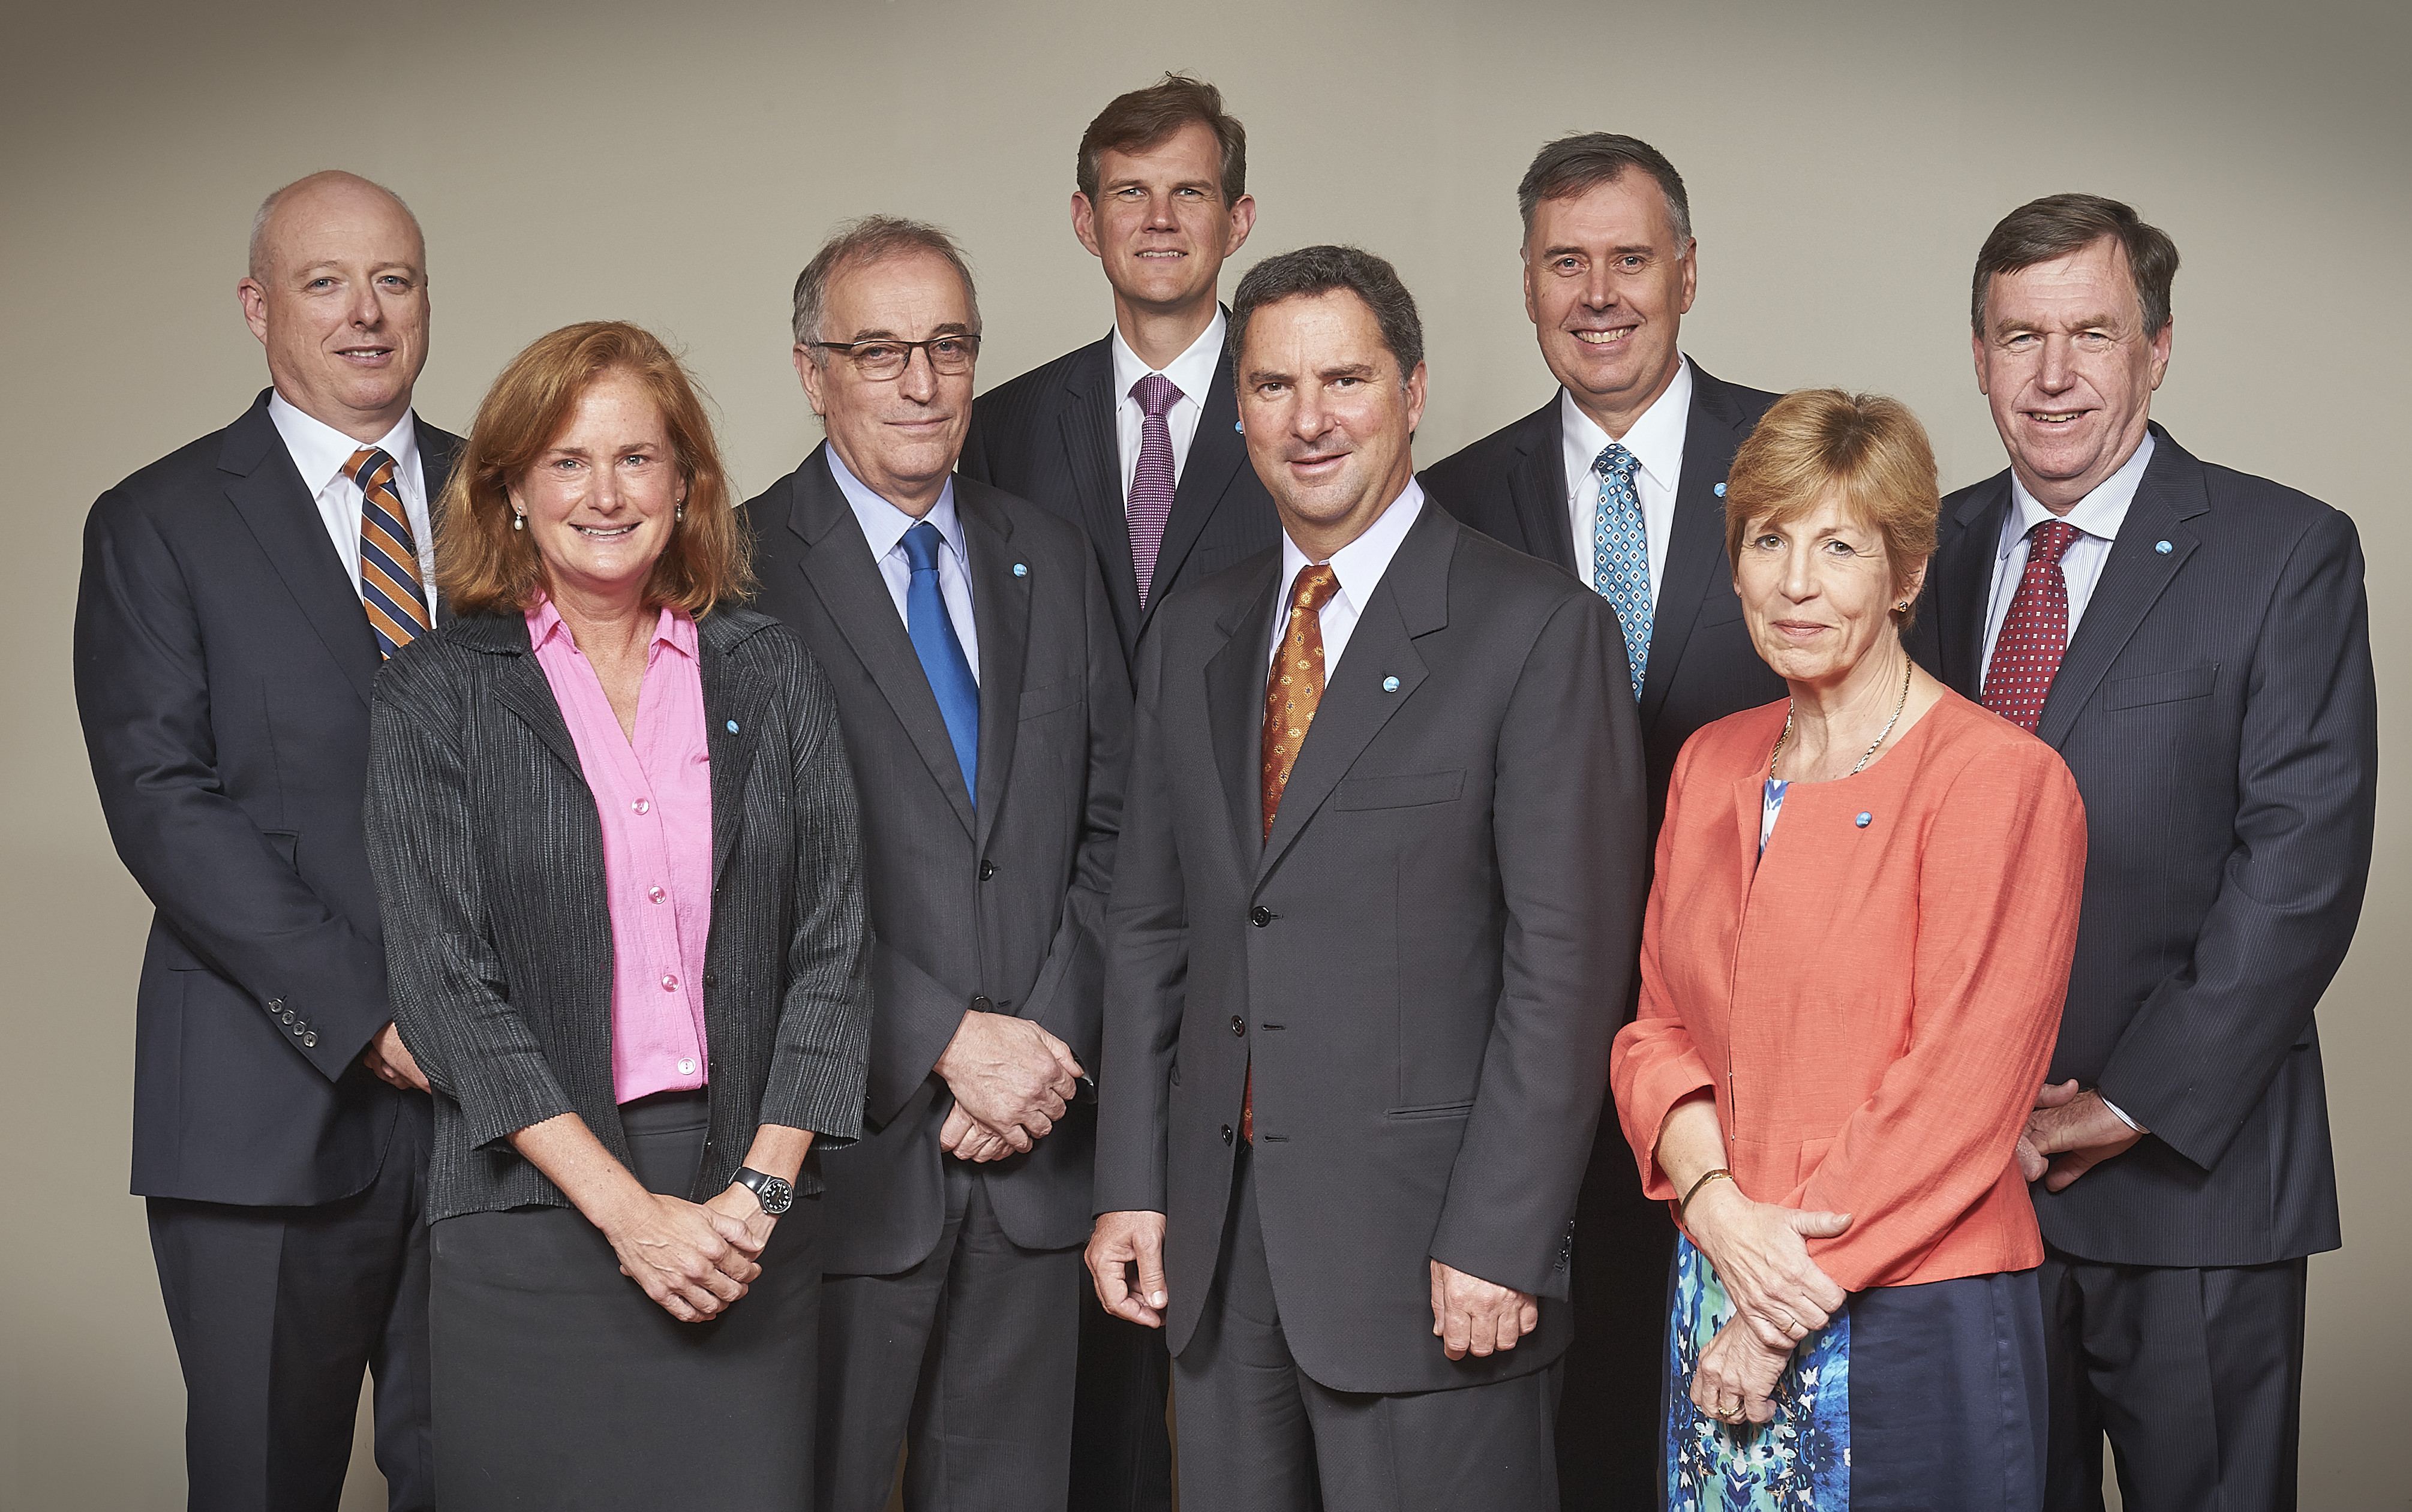 Members of the Executive Team from L to R: Dr Andrew Johnson, Dr Anita Hill, Dr David Williams, Dr Alex Wonhas, Dr Larry Marshall, Mr Craig Roy, Ms Hazel Bennett, Dr Brian Keating.